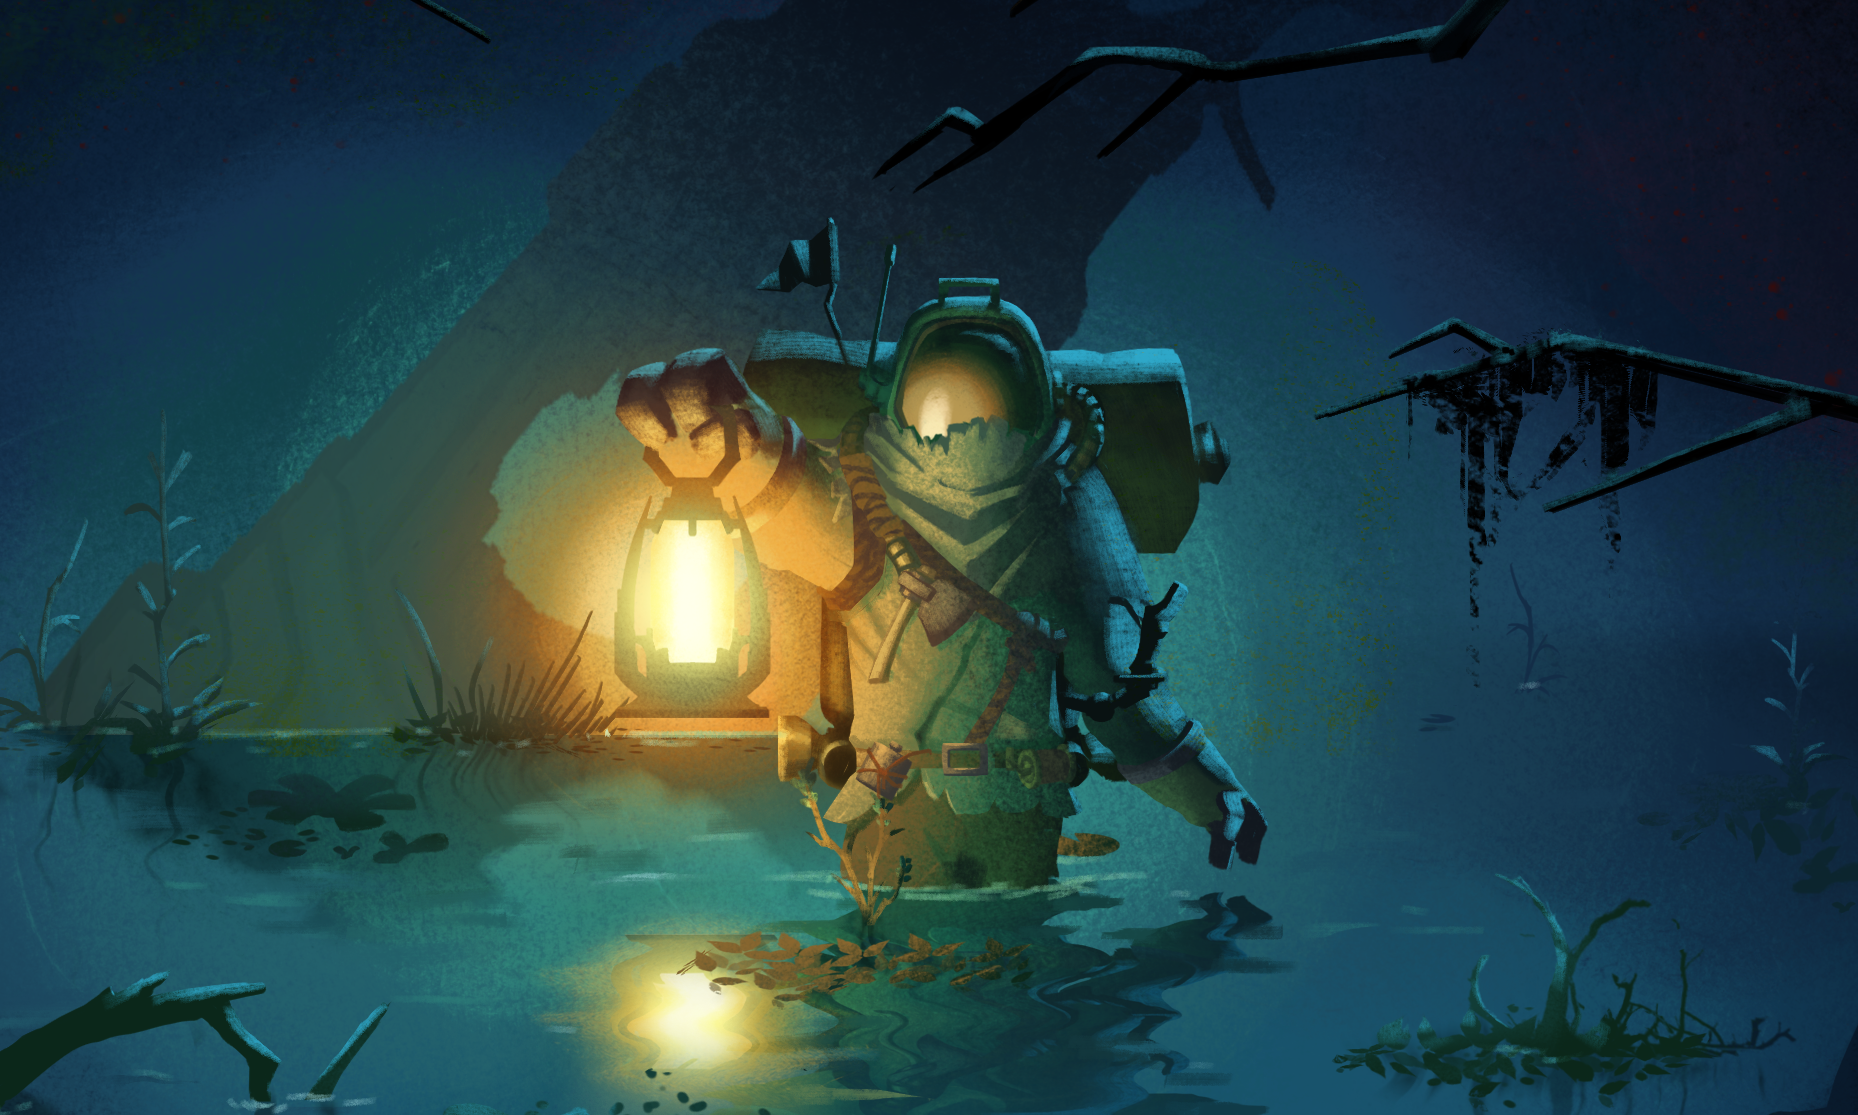 The key art for Outer Wilds Echoes of the DLC, featuring an alien astronaut carrying a glowing lamp in a moody swamp